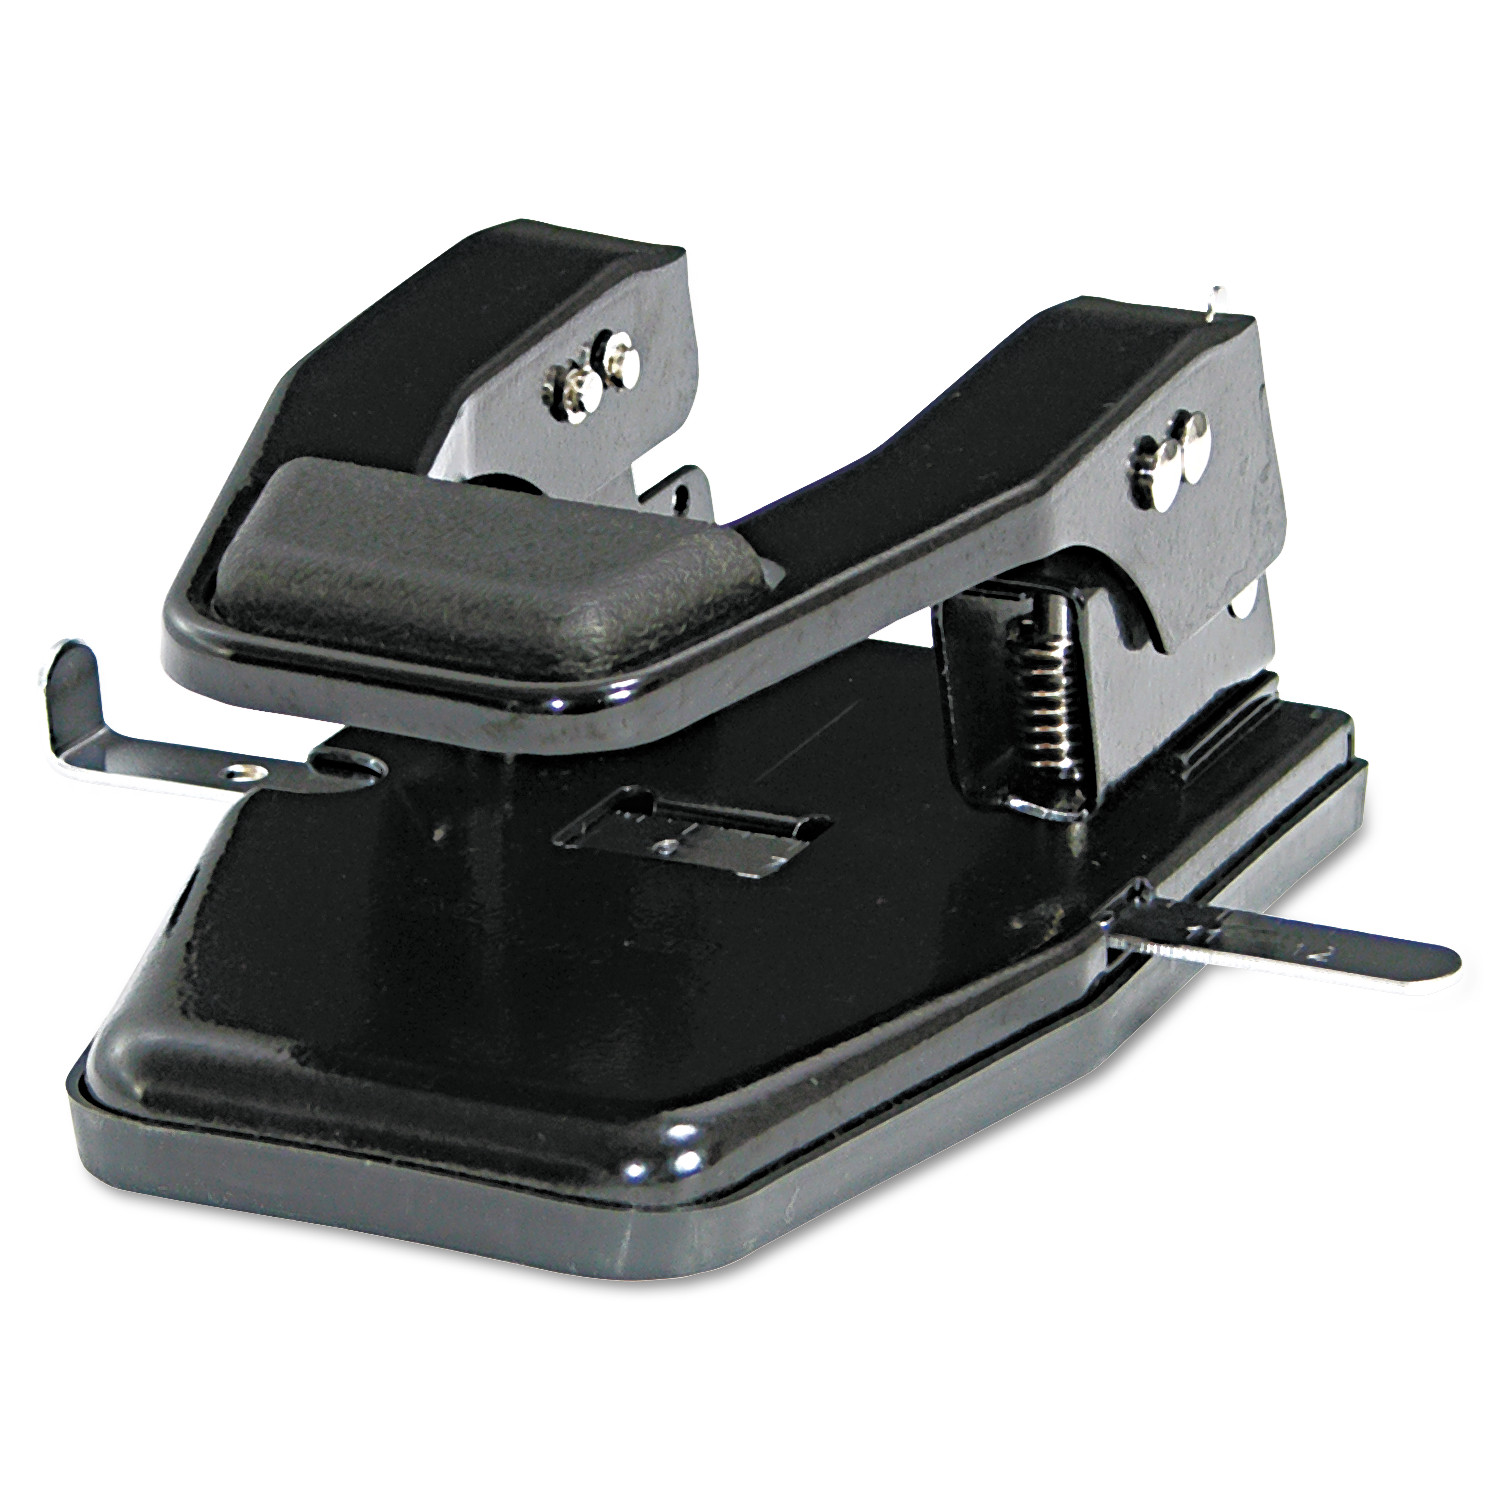 "40-Sheet Heavy-Duty Two-Hole Punch, 9/32"" Holes, Padded Handle, Black"